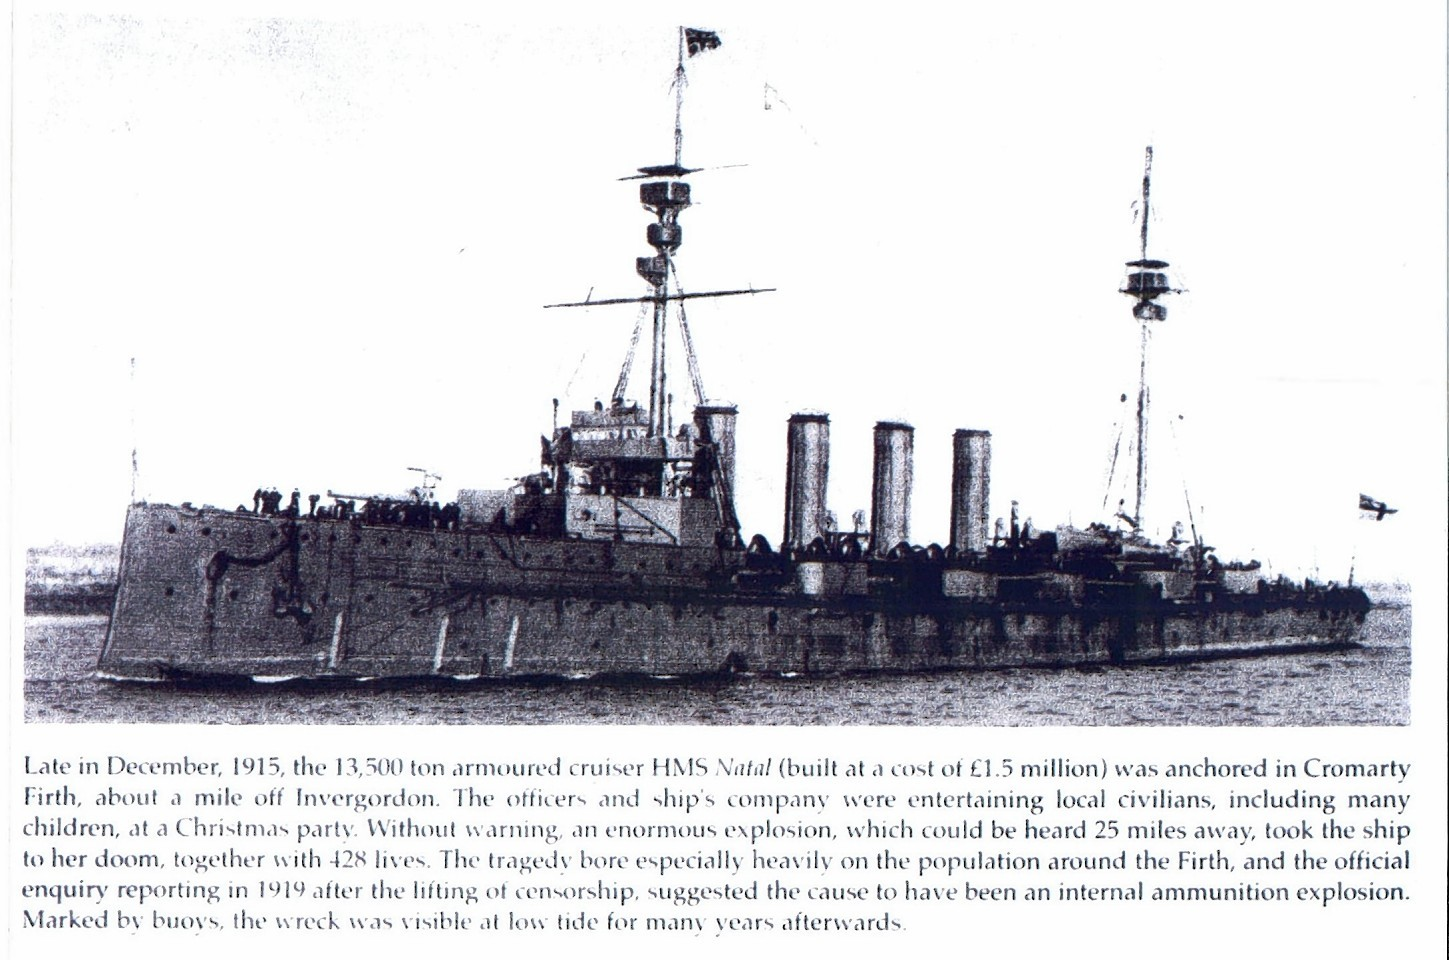 HMS Natal, which sank in the Cromarty Firth in 1915.